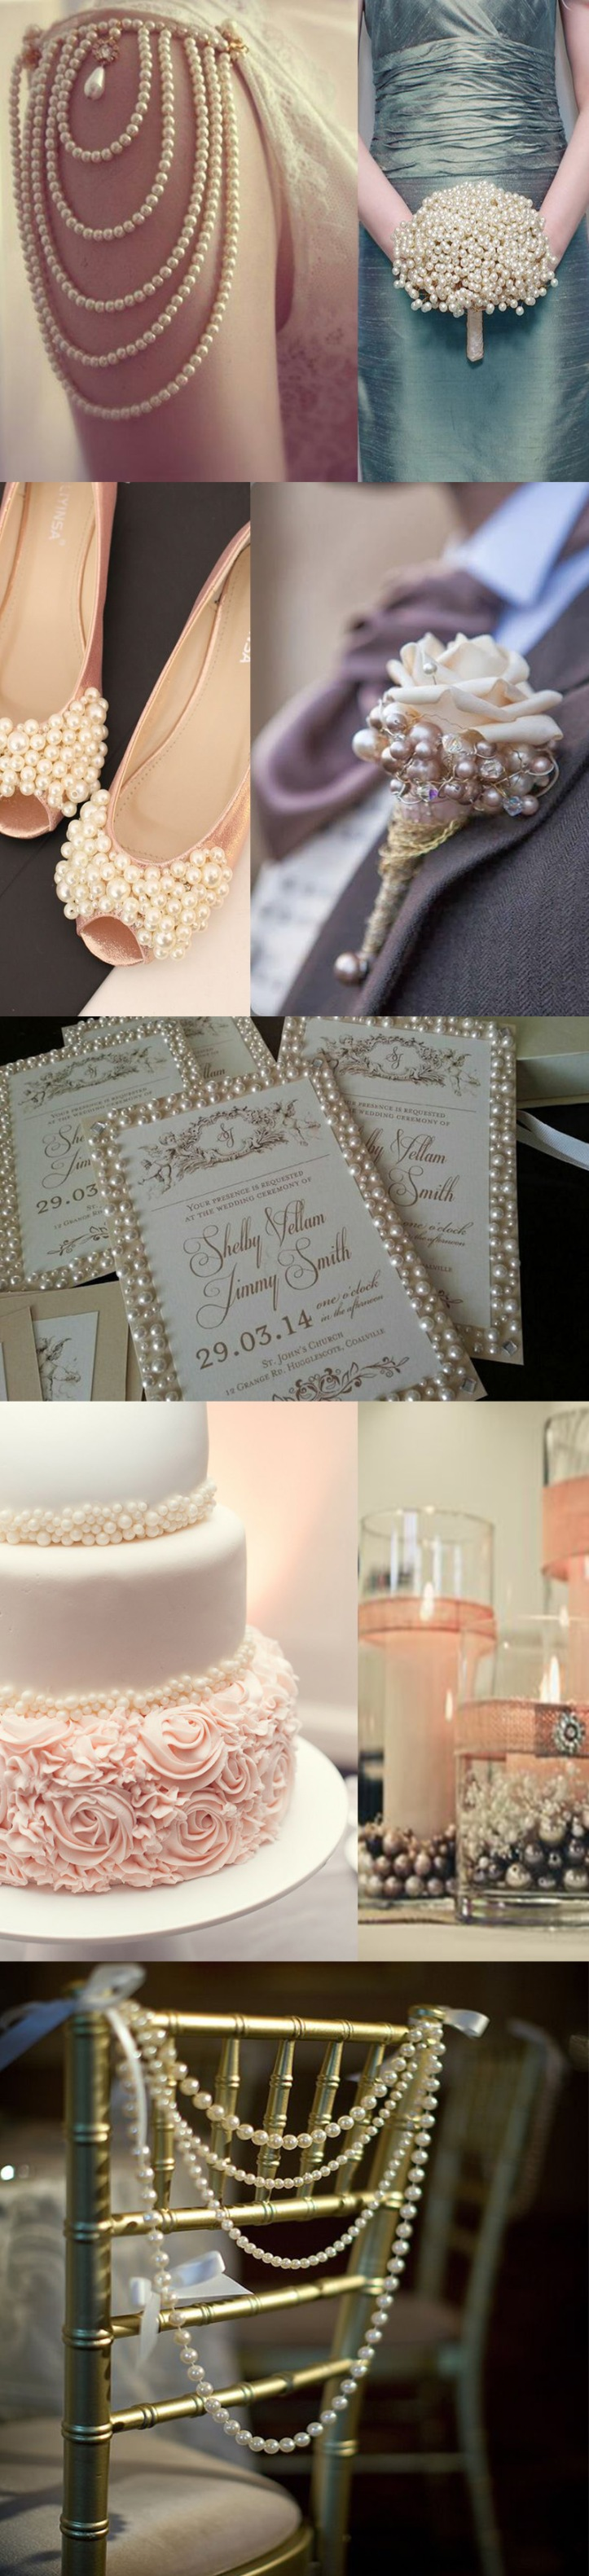 Pearl Wedding Inspiration from True Romance Weddings